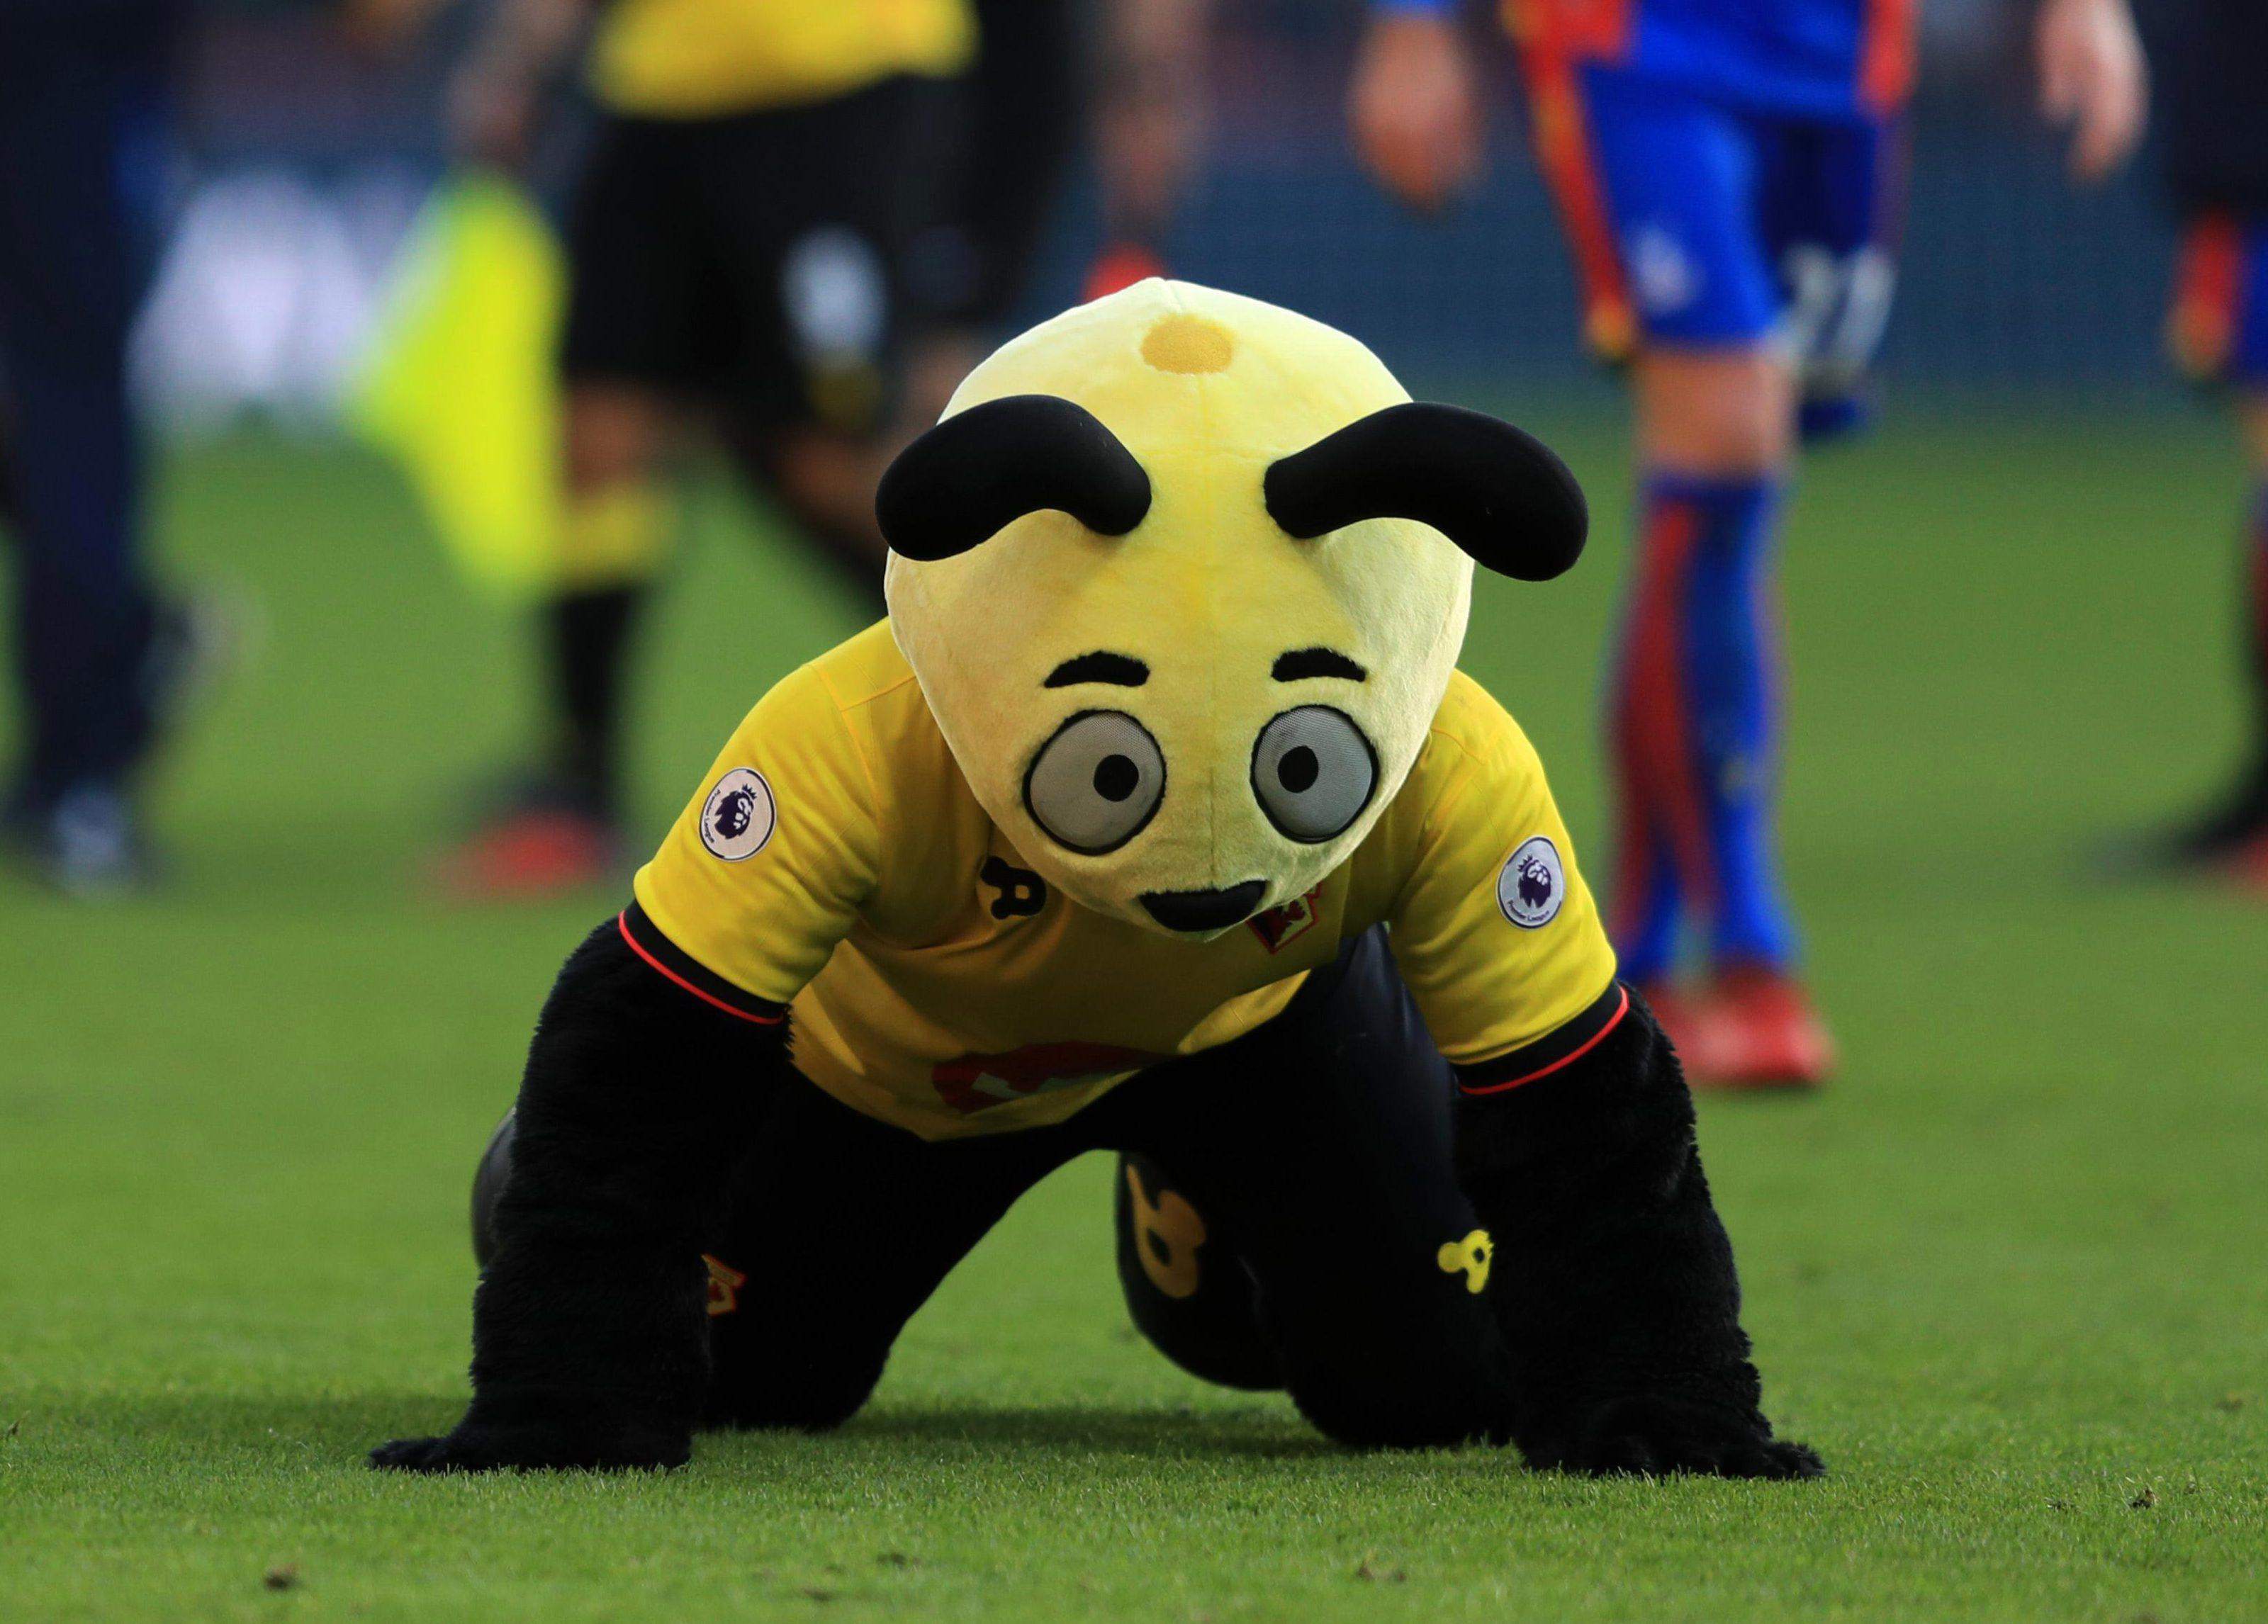 Zaha's alleged diving against Watford led to the Hertfordshire club's mascot Harry the Hornet simulating a dive